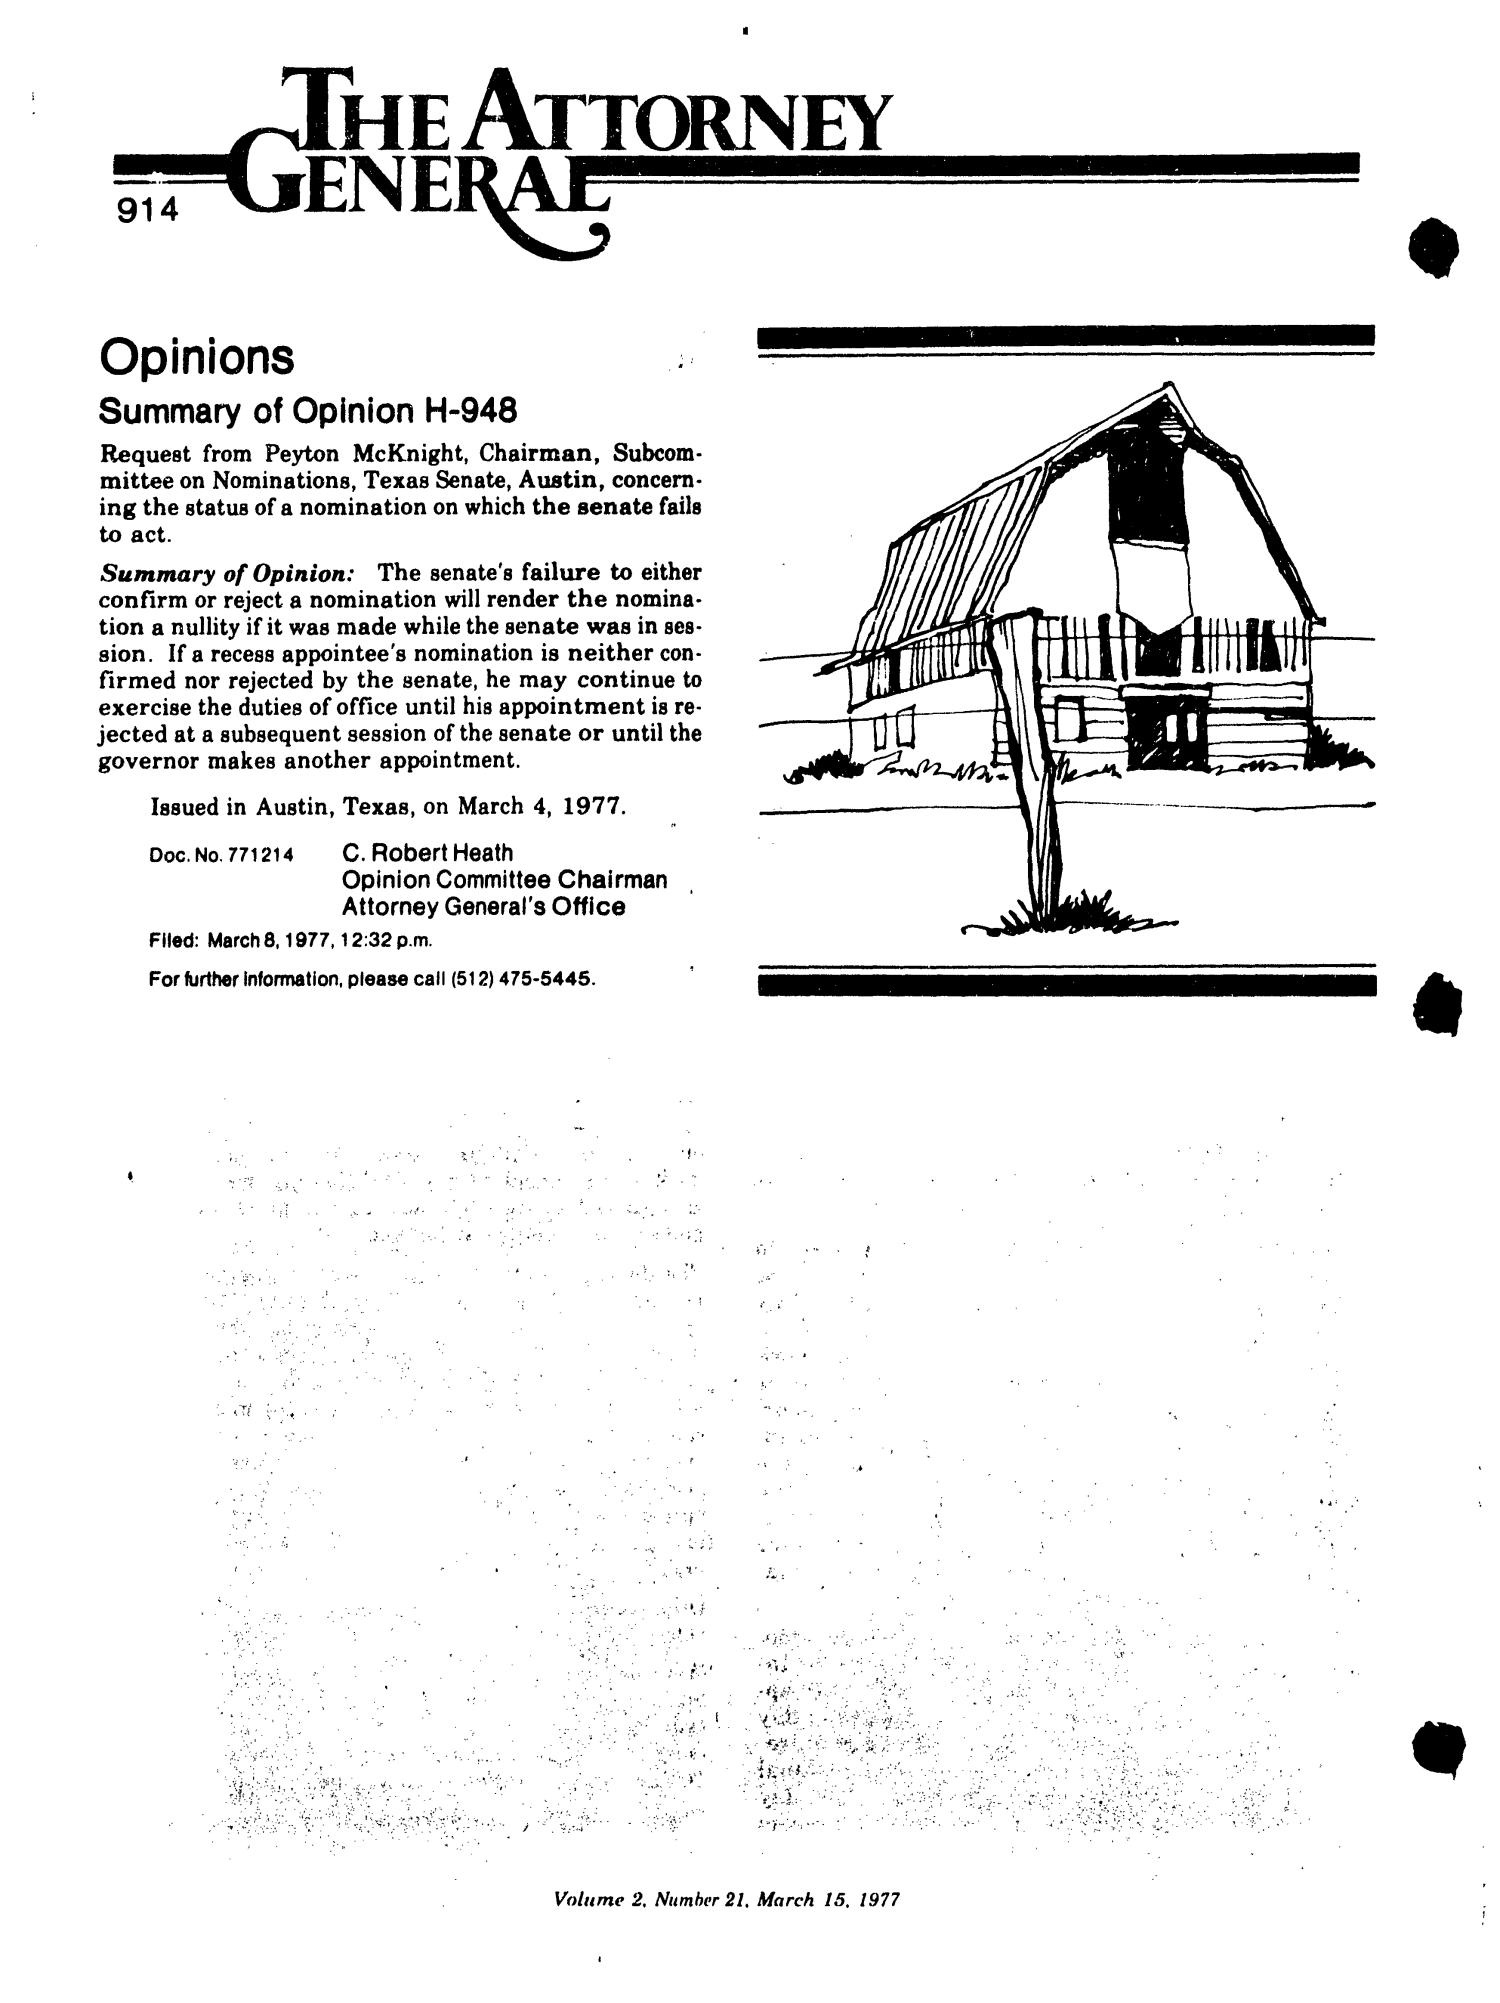 Texas Register, Volume 2, Number 21, Pages 911-972, March 15, 1977                                                                                                      914